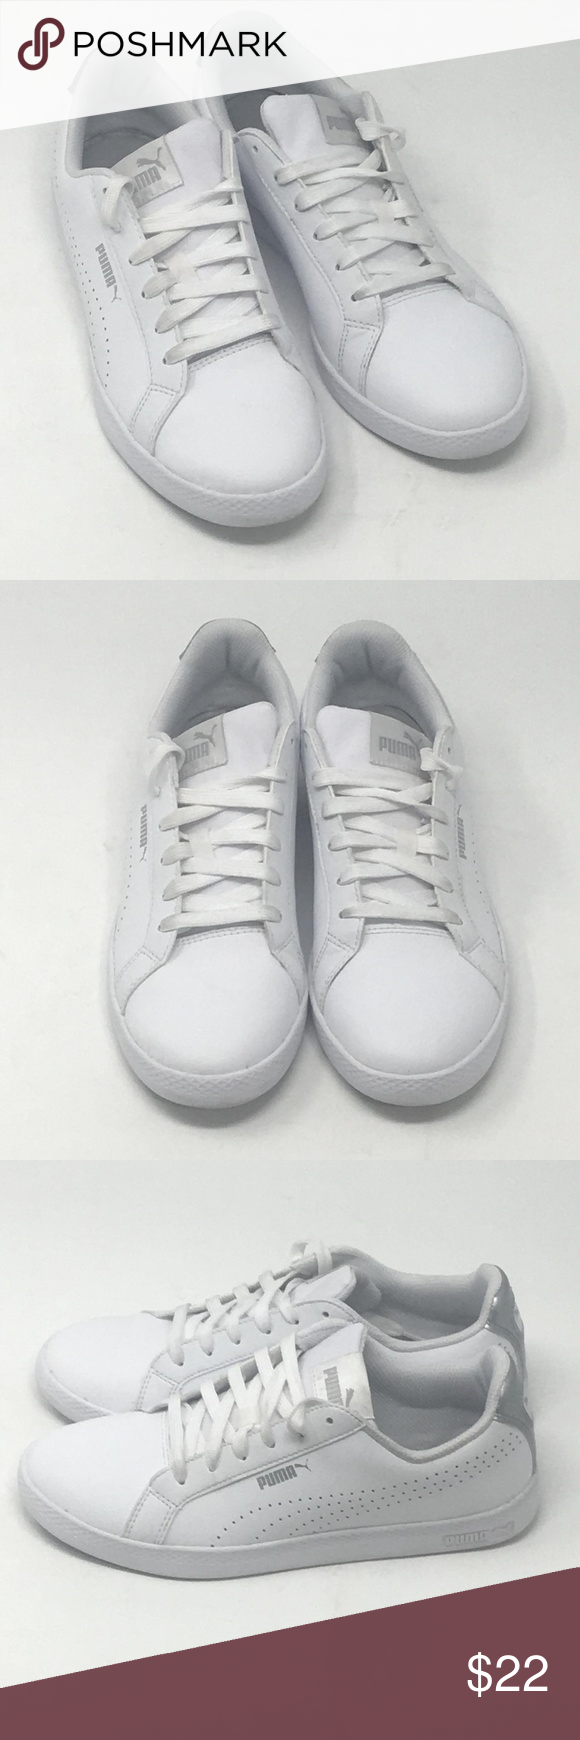 15b0dd30406a Puma Ladies  Leather Shoe Smash Perf Met White Used But in Excellent  Condition. Actually these are customer return items. These are actual  photos of shoes ...